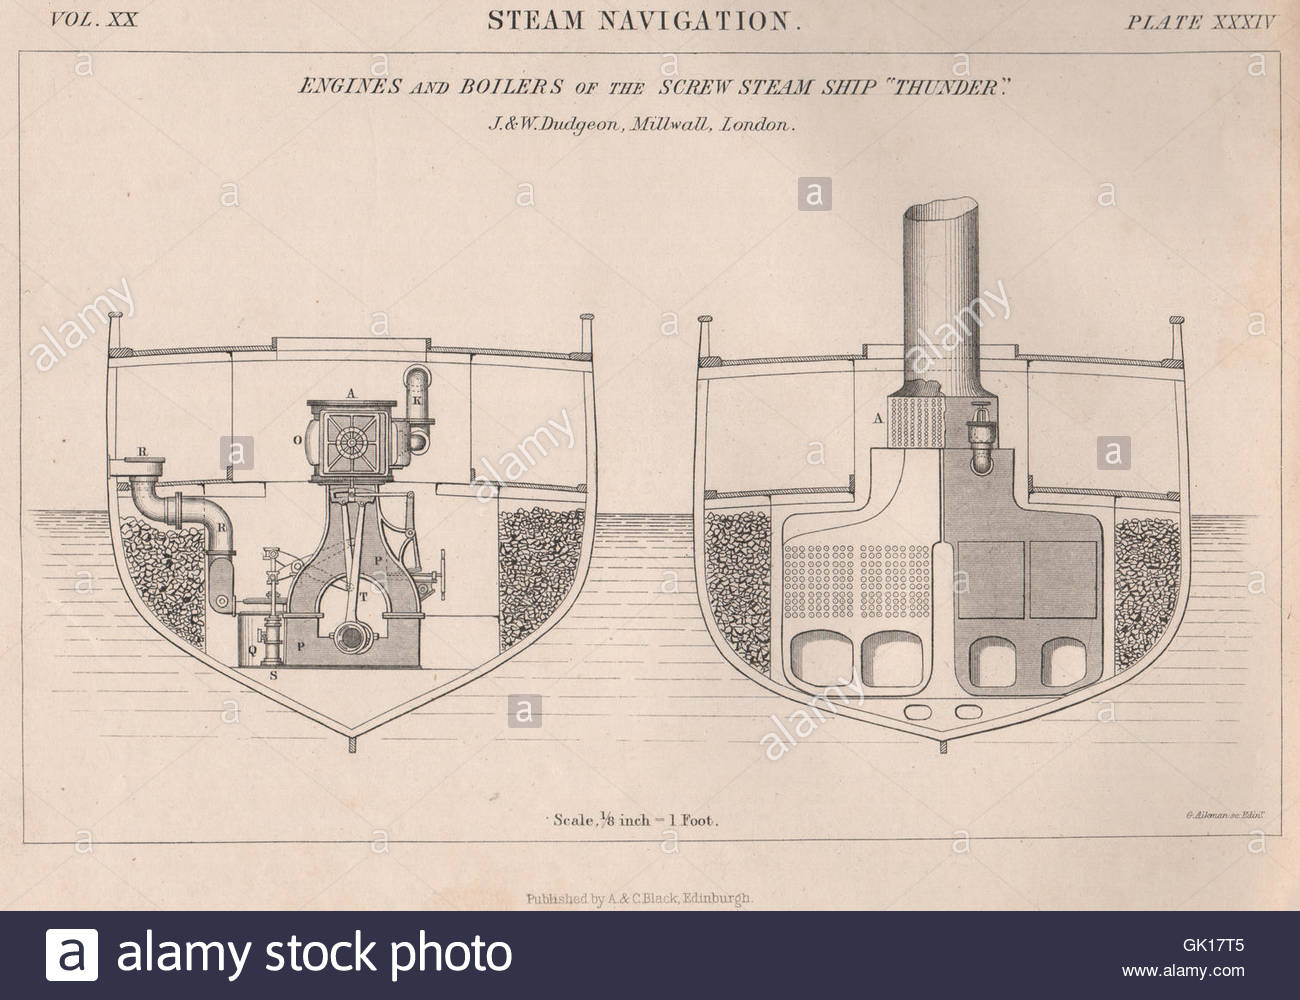 Engines Drawing At Free For Personal Use Mazda 808 Wiring Diagram 1300x1000 Engineering Amp Boilers Of The Screw Steam Ship